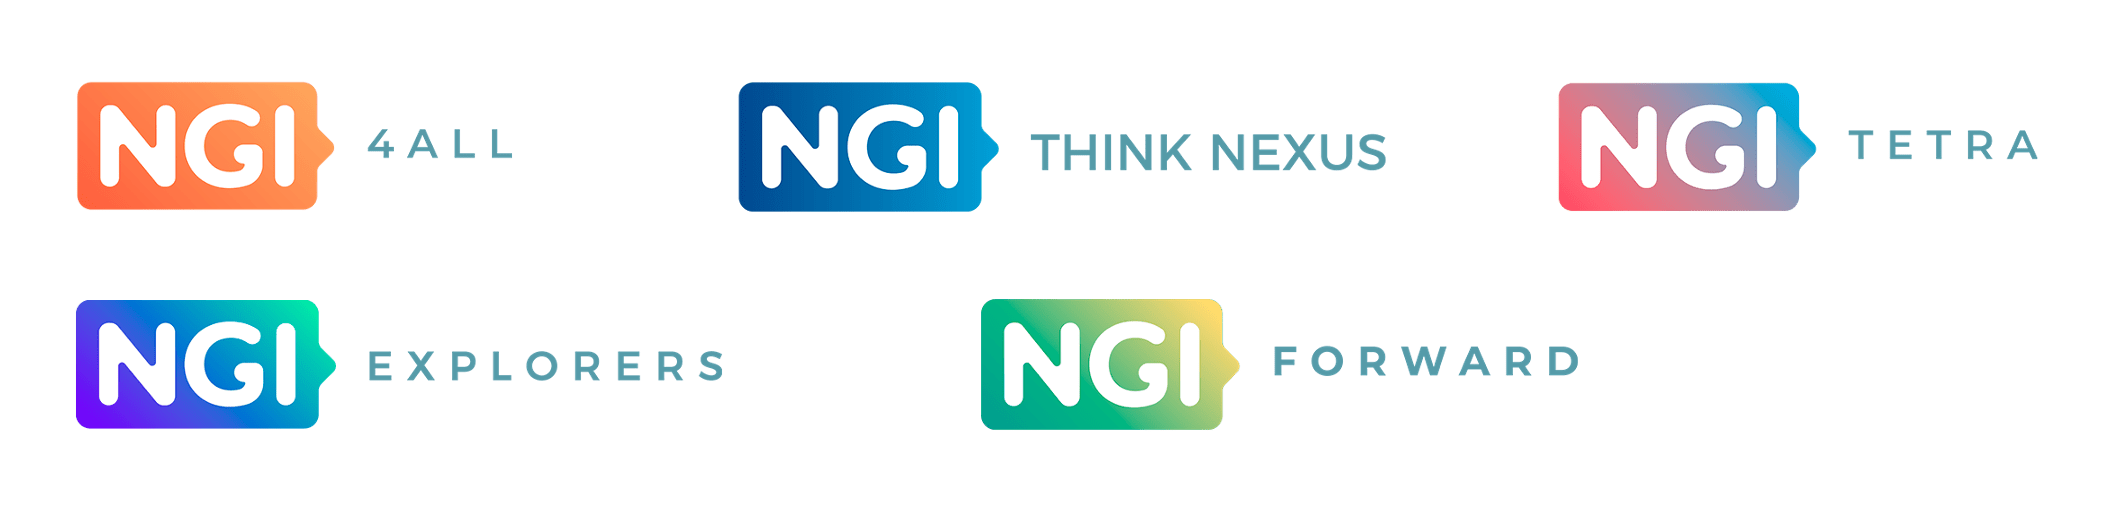 Coordination and Support Actions in NGI